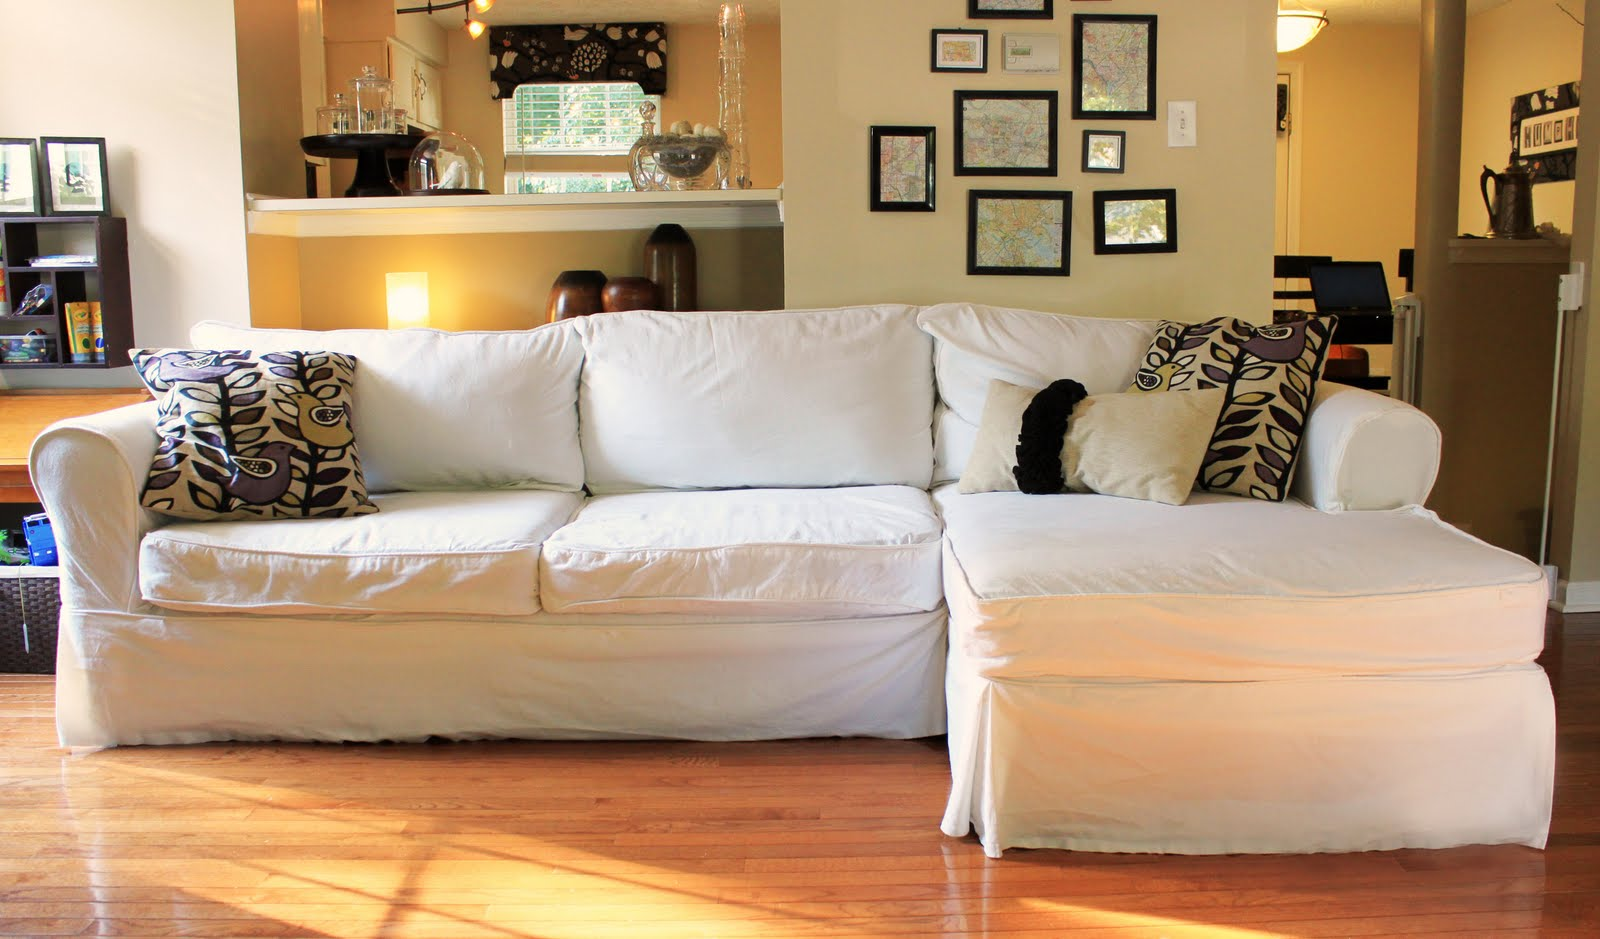 Slipcover It! : cheap sectional slipcovers - Sectionals, Sofas & Couches